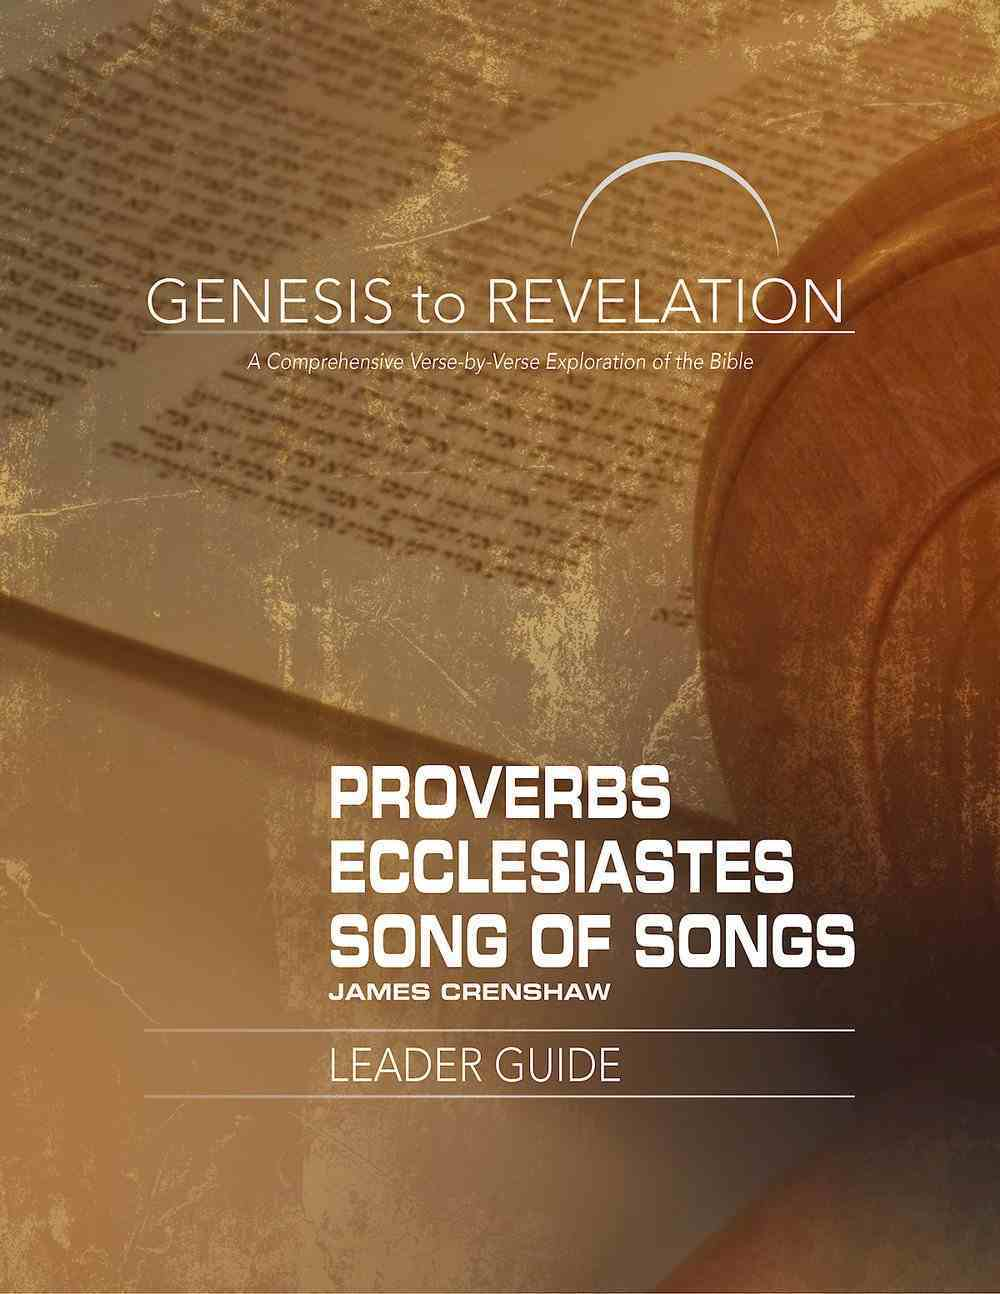 Proverbs, Ecclesiastes, Song of Songs : A Comprehensive Verse-By-Verse Exploration of the Bible (Leader Guide) (Genesis To Revelation Series) eBook